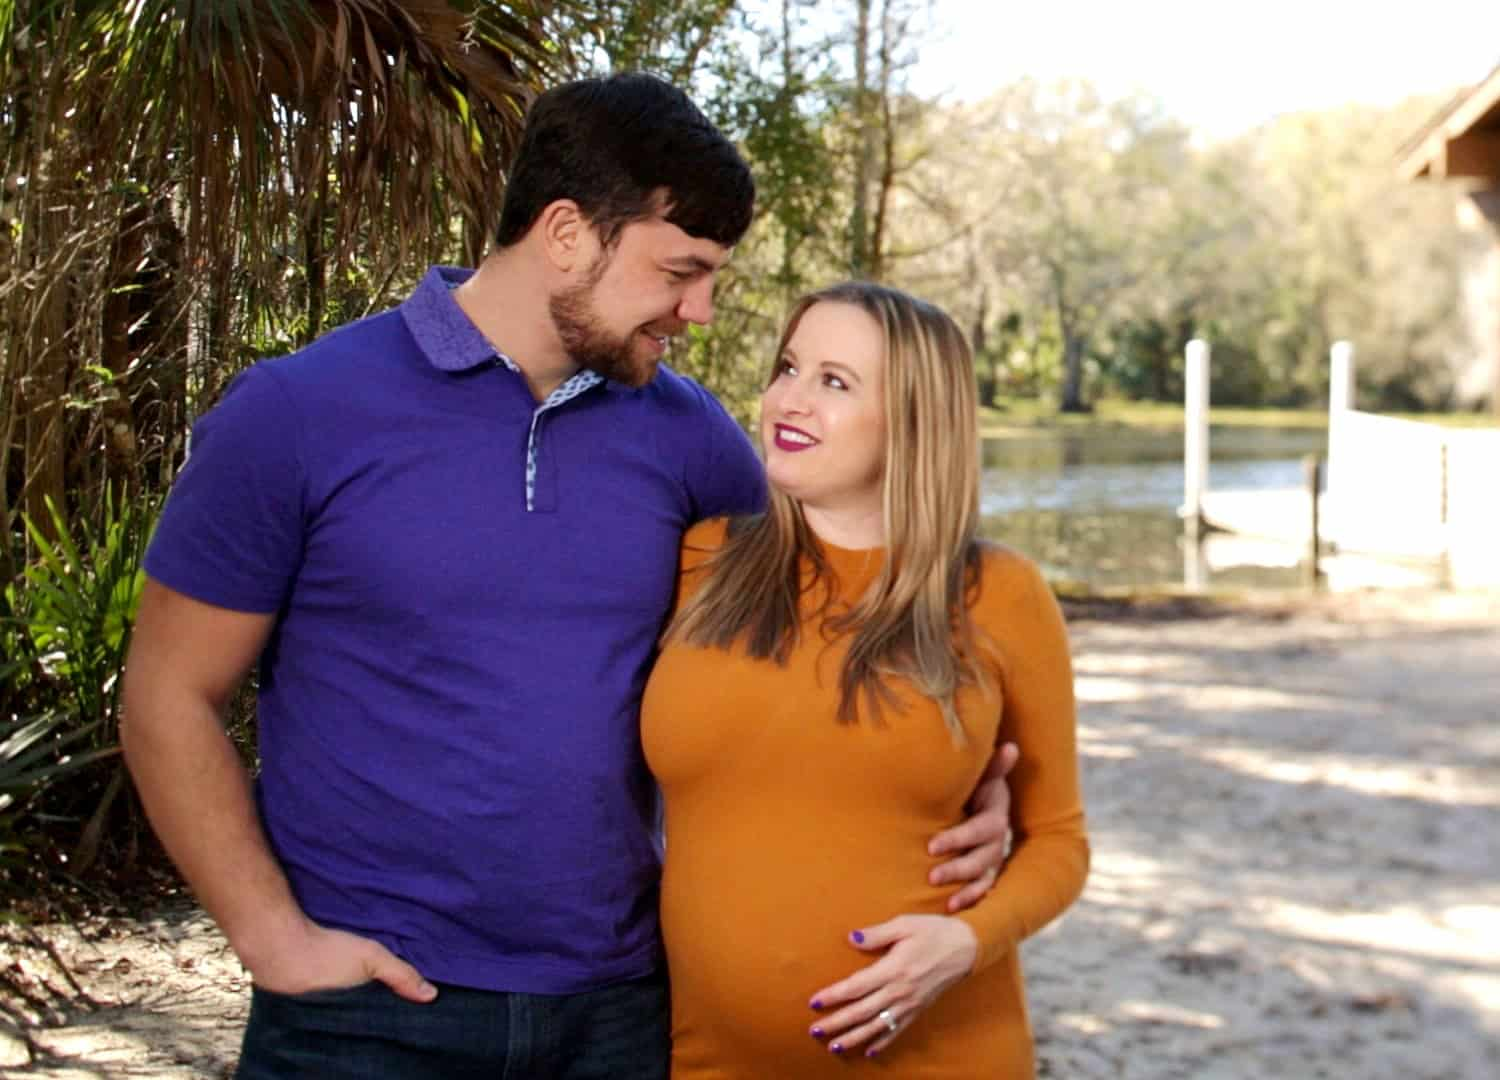 90 Day Fiance Happily Ever After Season 4 Elizabeth Potthast and Andrei Castravet